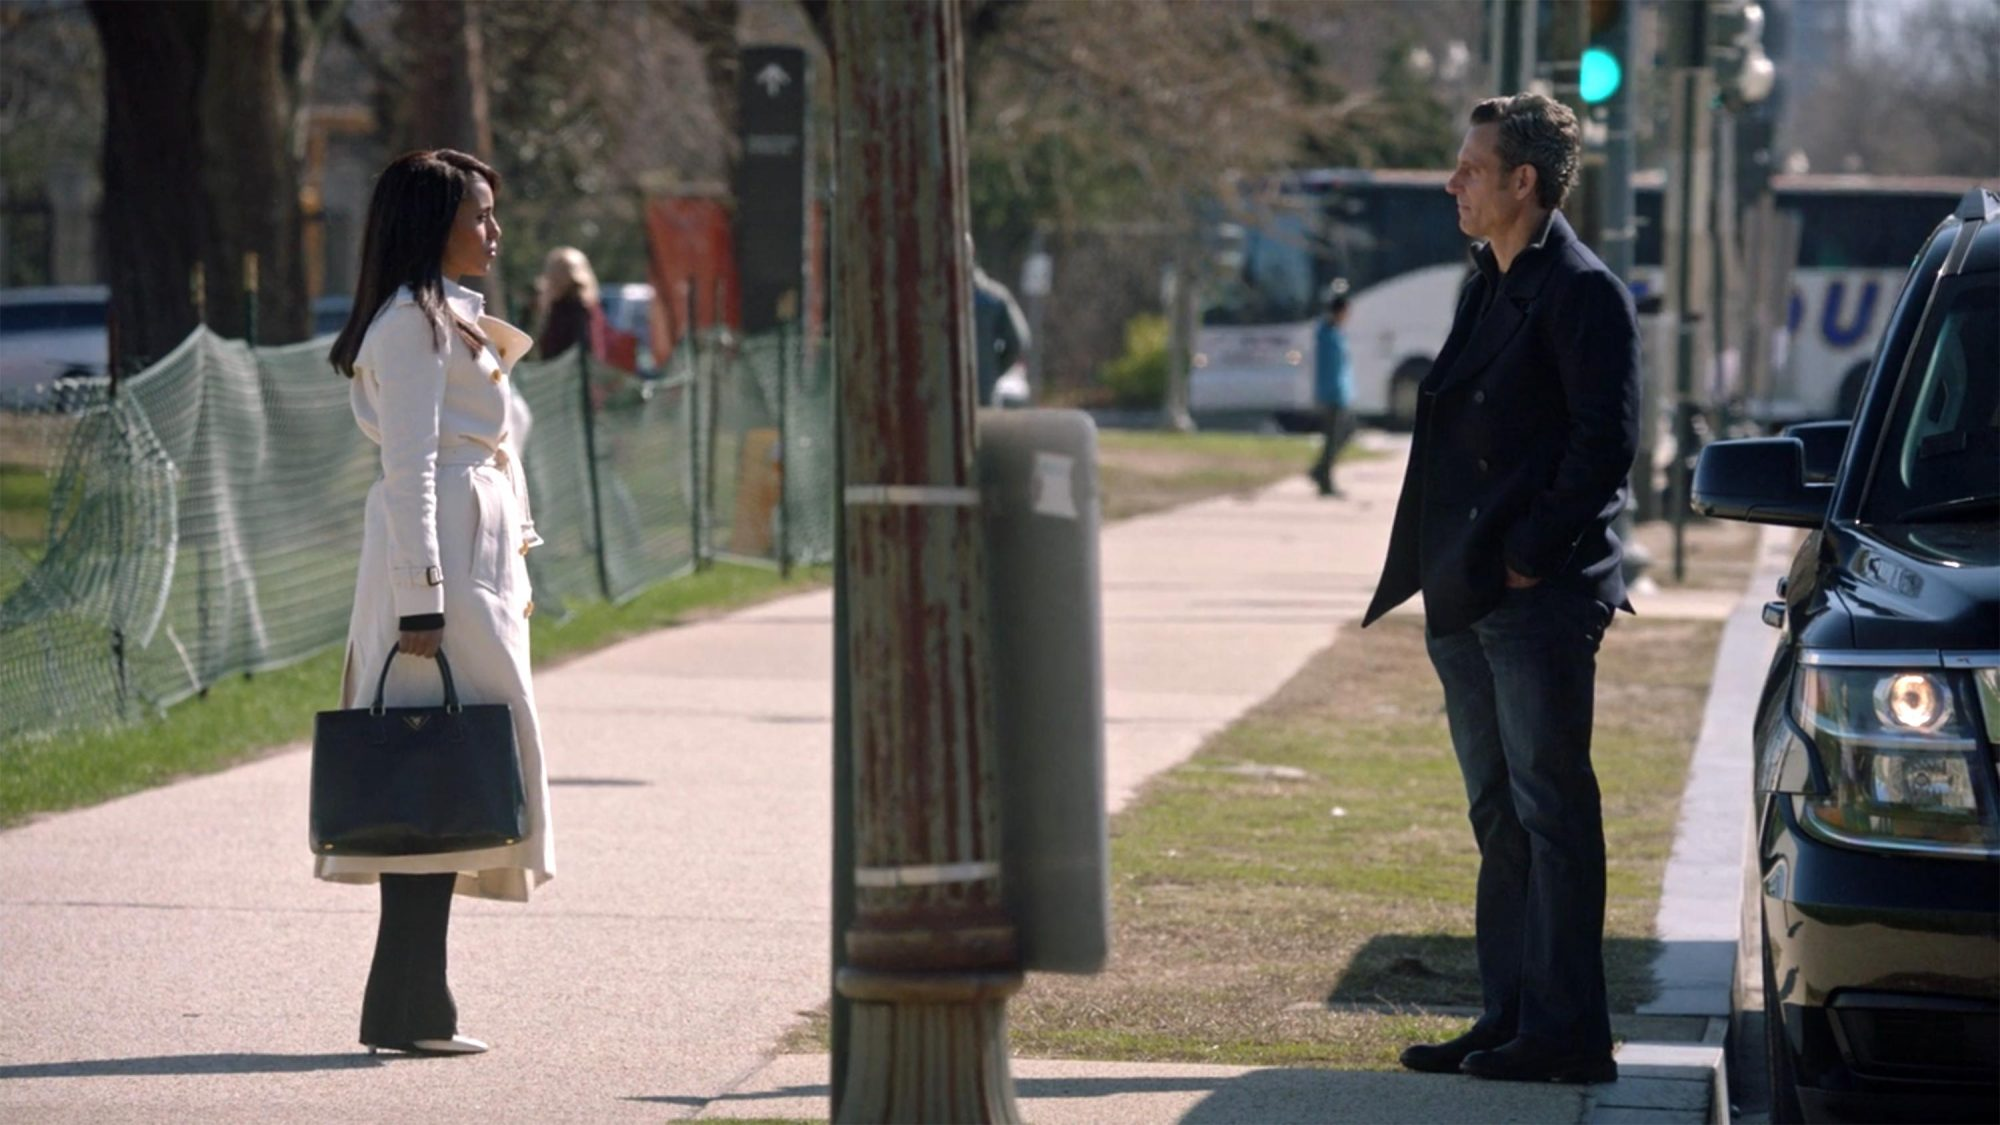 Olivia and Fitz meet at the bus stop, Scandal